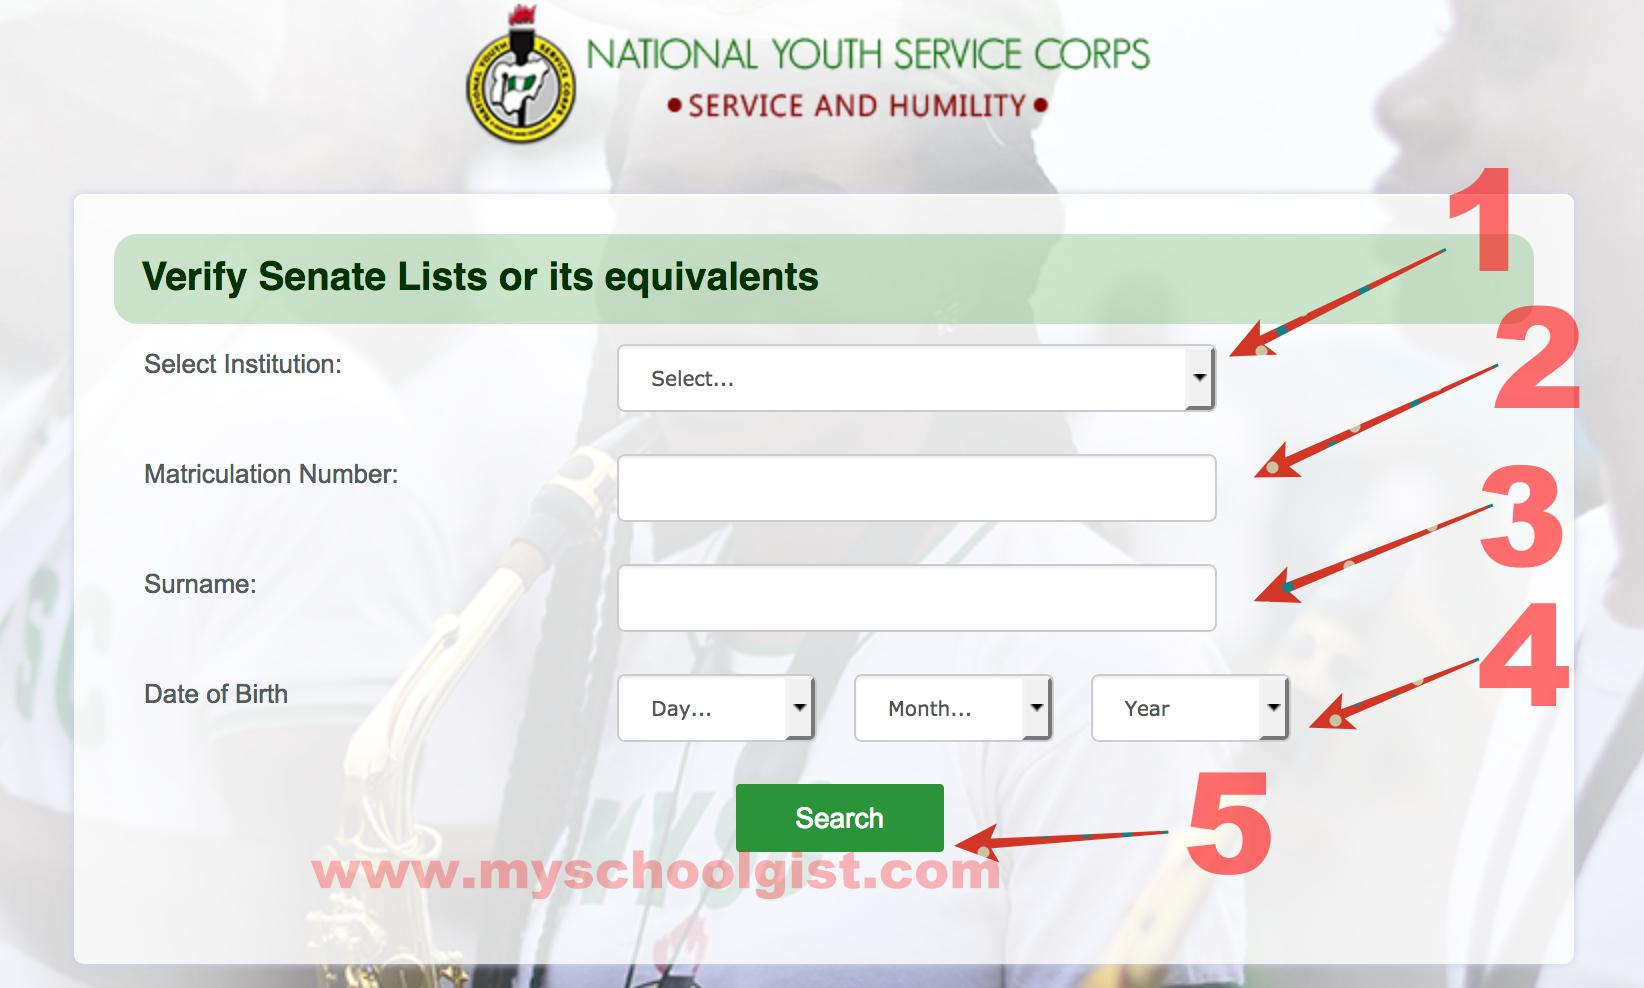 Check NYSC Senate List or its equivalents